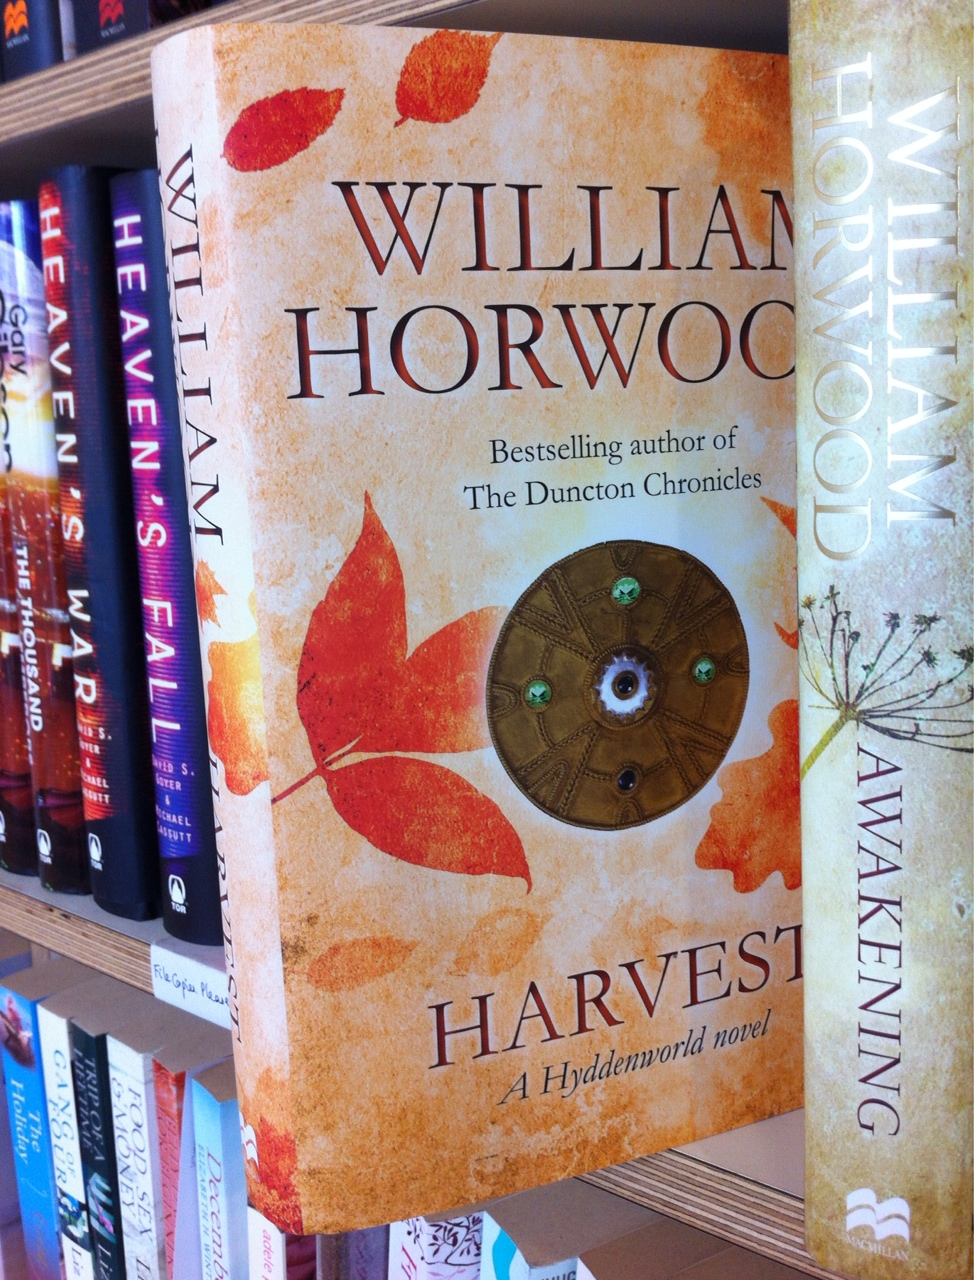 Harvest by William Horwood - foil on front and spine